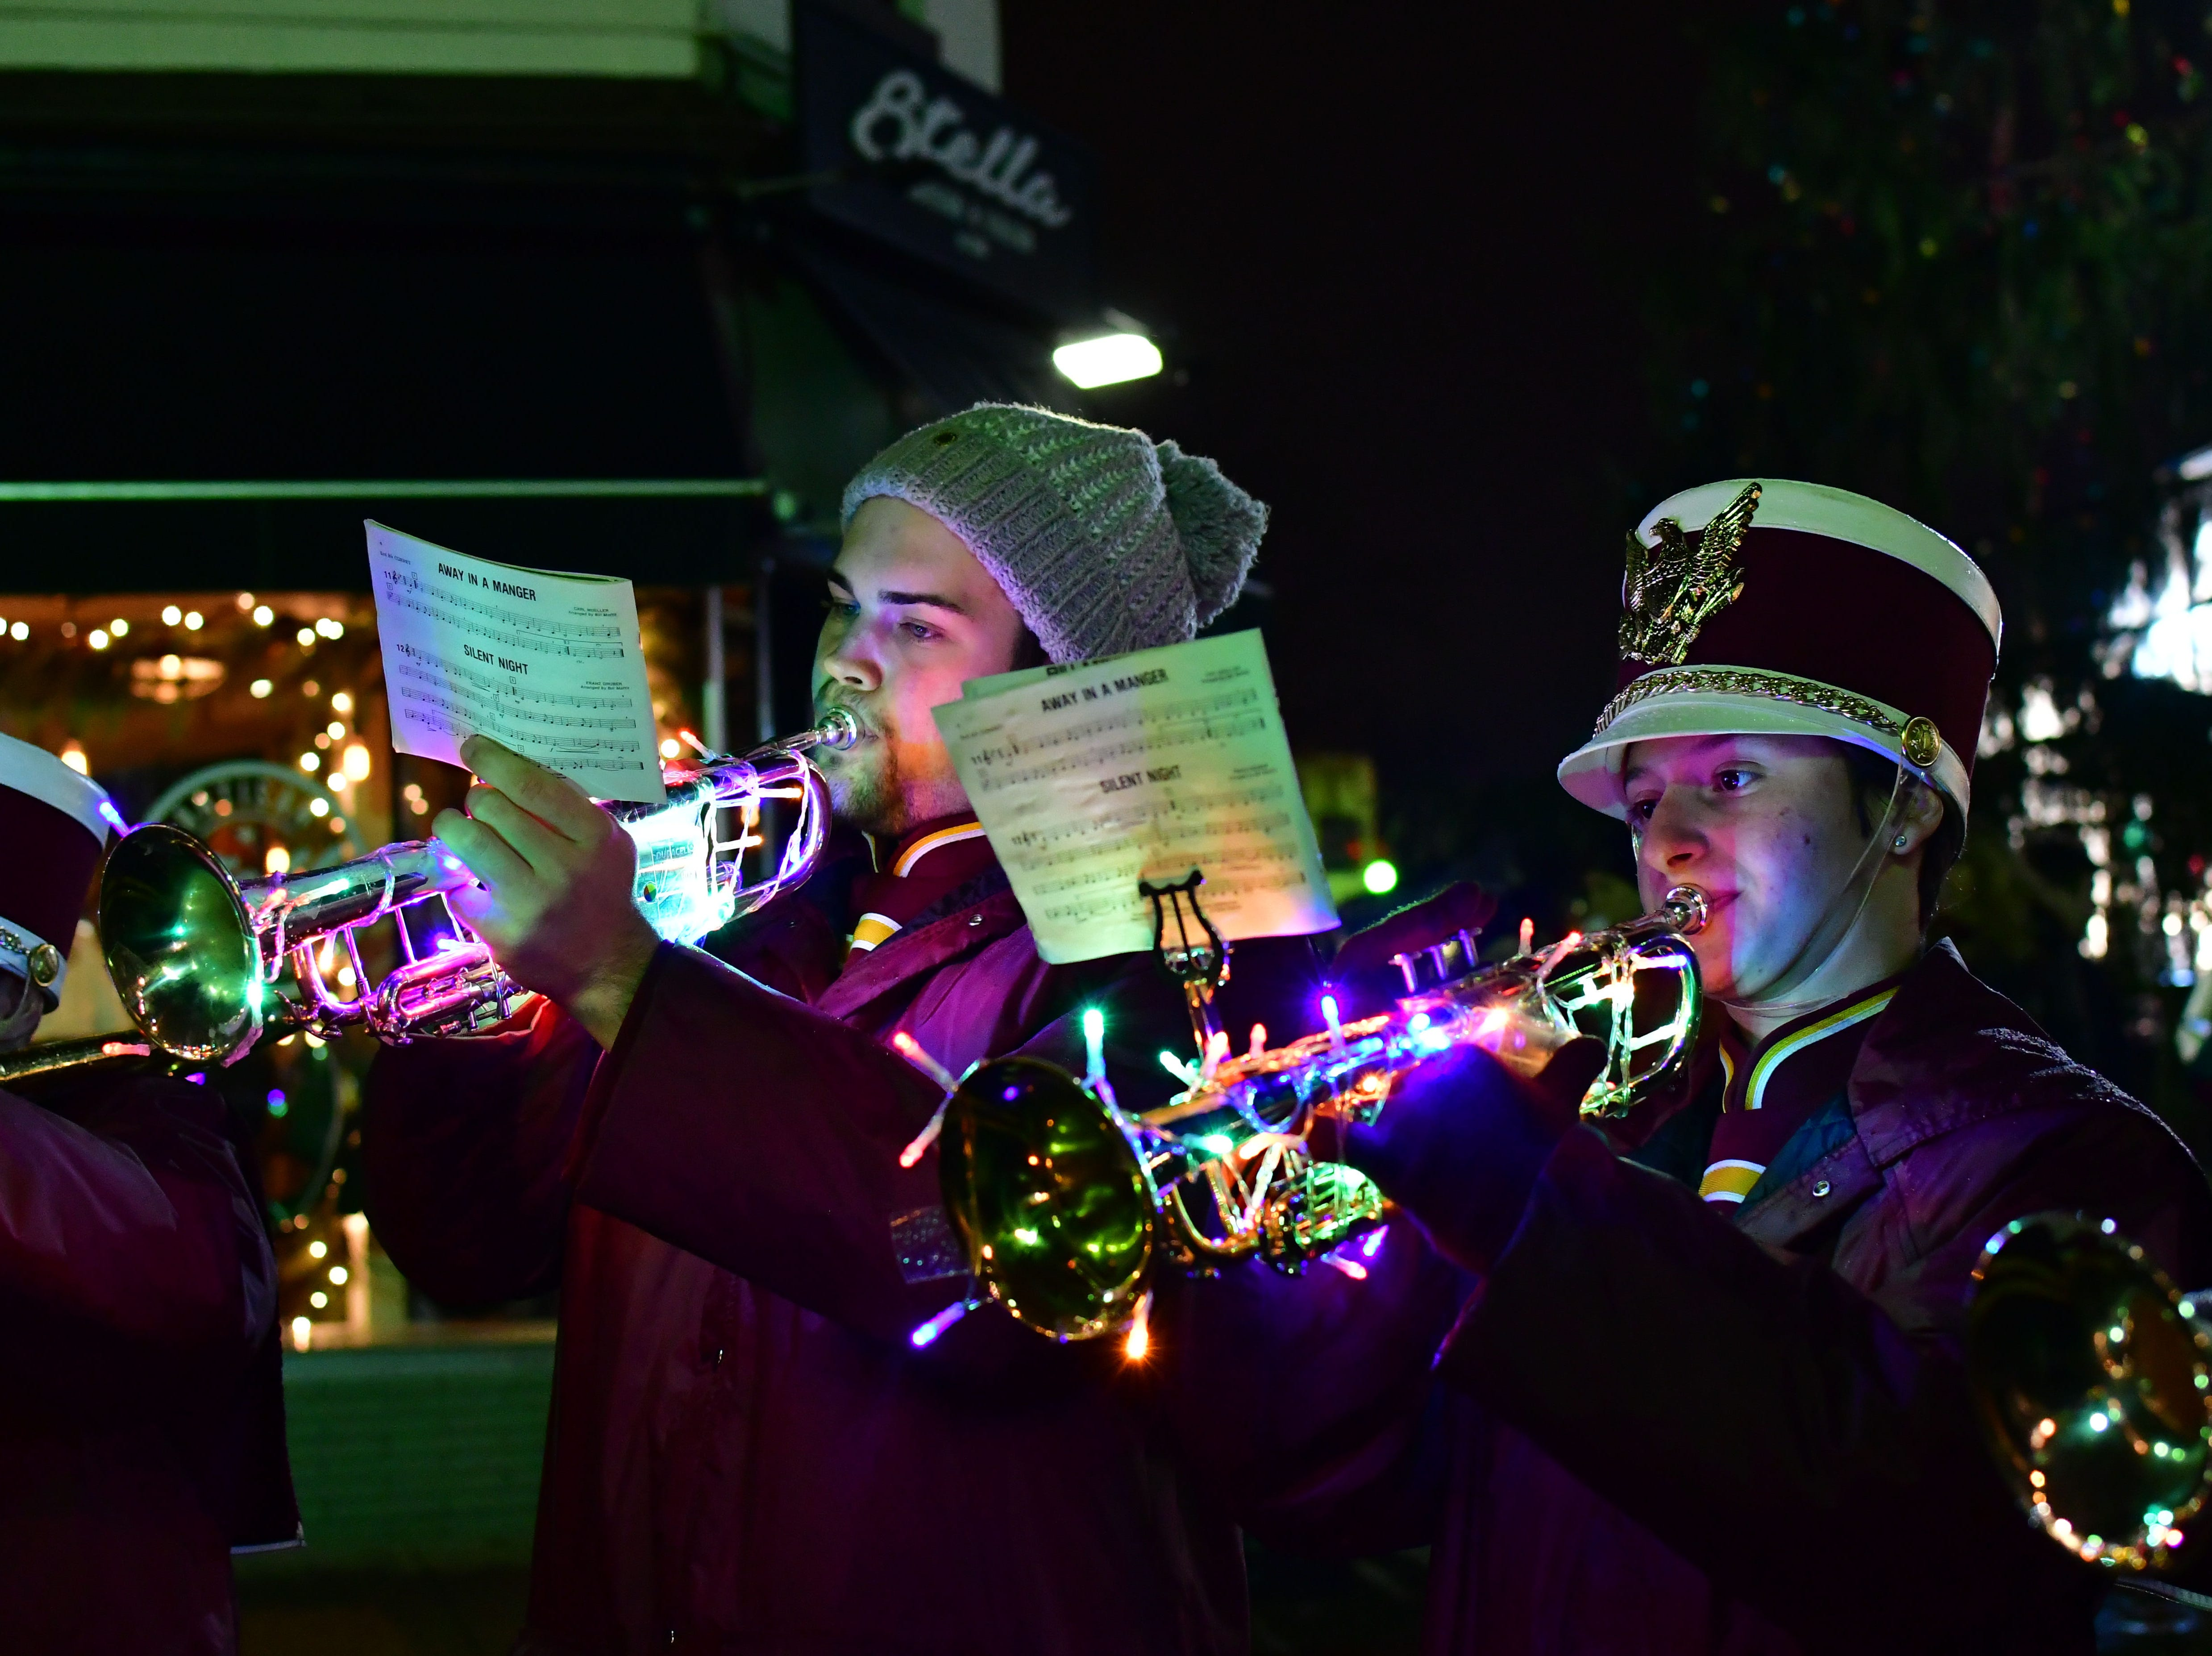 Matthew McCoy, left, and Victoria Schecter, right.  Holiday festivities along East Ridgewood Avenue in Ridgewood on Nov. 30.